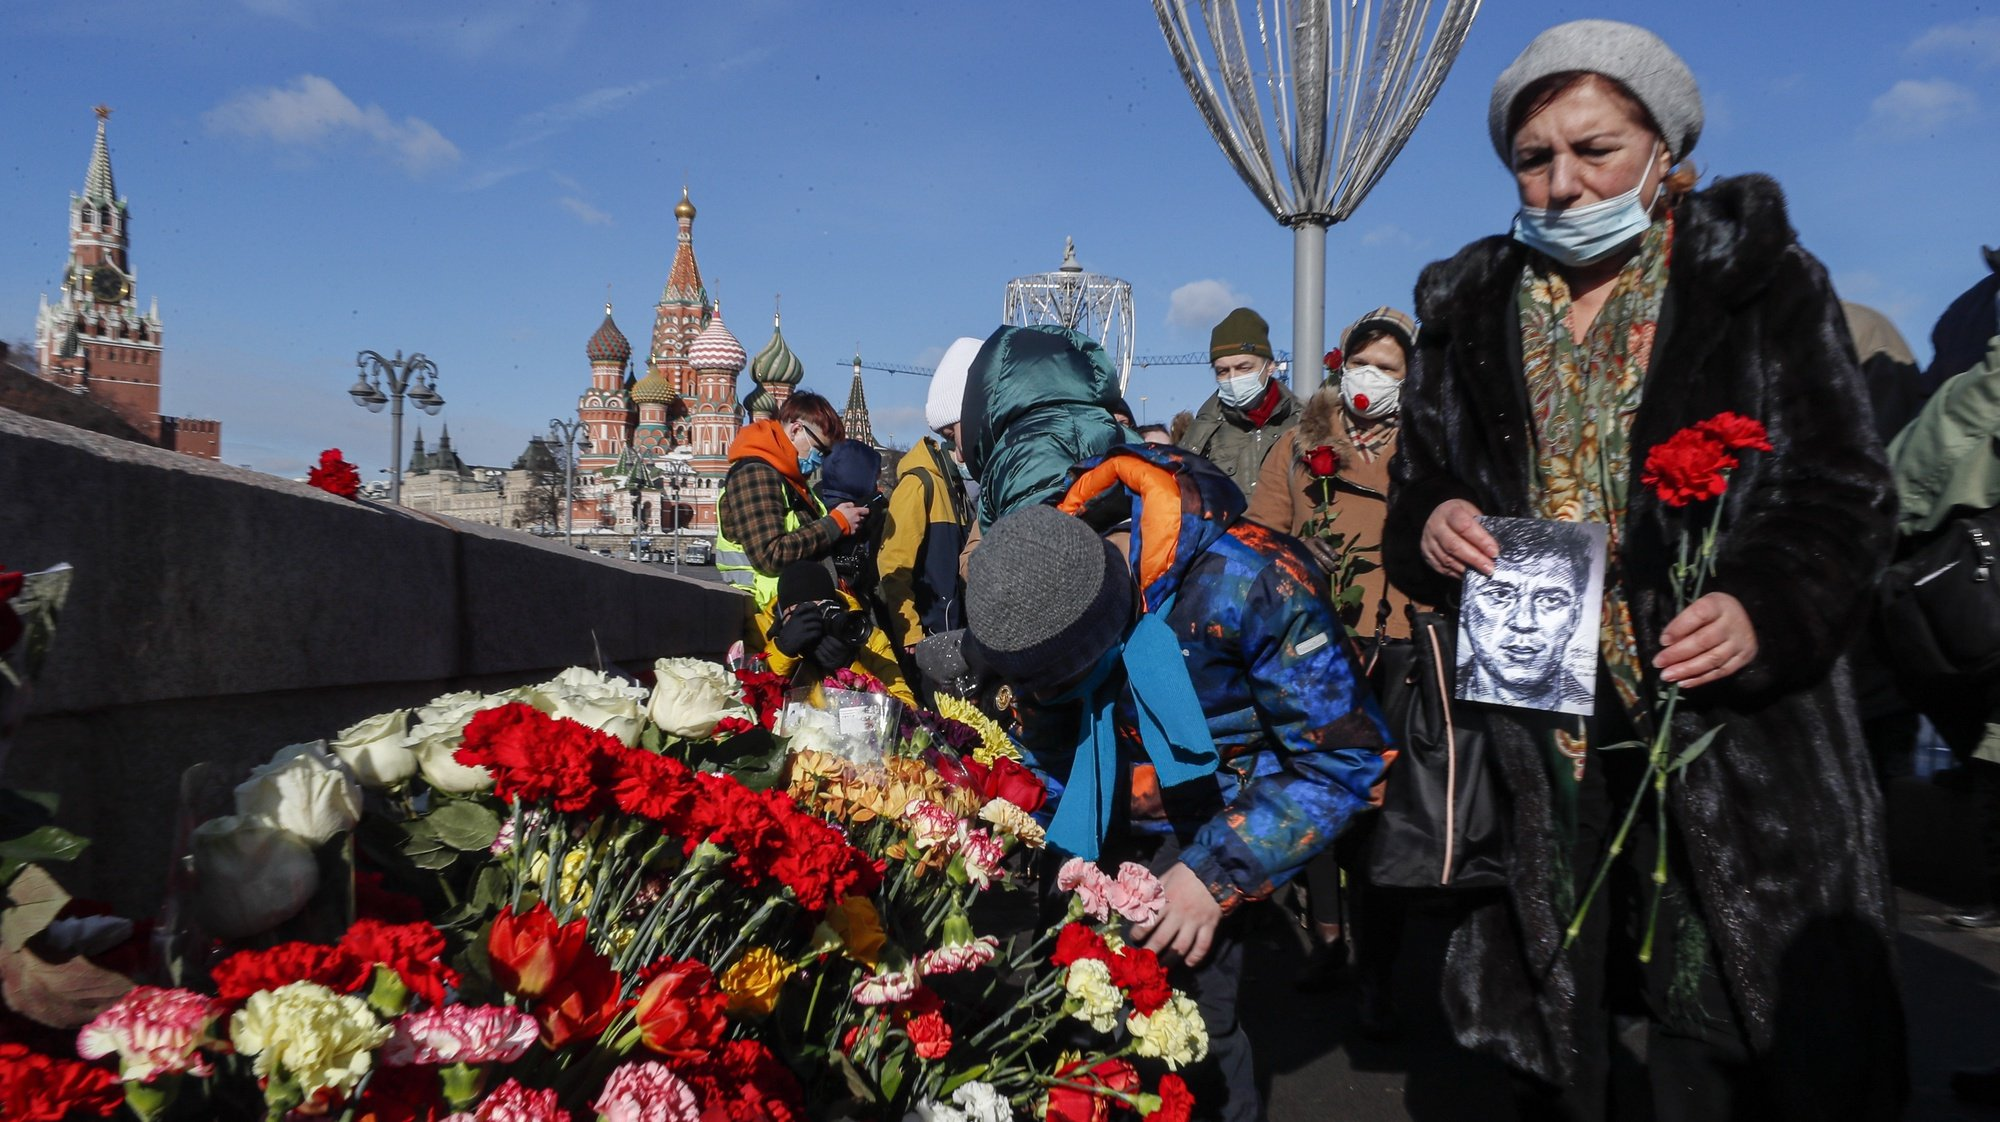 epa09039796 People lay flowers at the site where Russian opposition politician Boris Nemtsov died during an event marking the sixth anniversary of his assassination, in Moscow, Russia, 27 February 2021. Boris Nemtsov was killed on 27 February 2015 by suspected Chechen hitmen on a bridge in front of the Kremlin.  EPA/SERGEI ILNITSKY